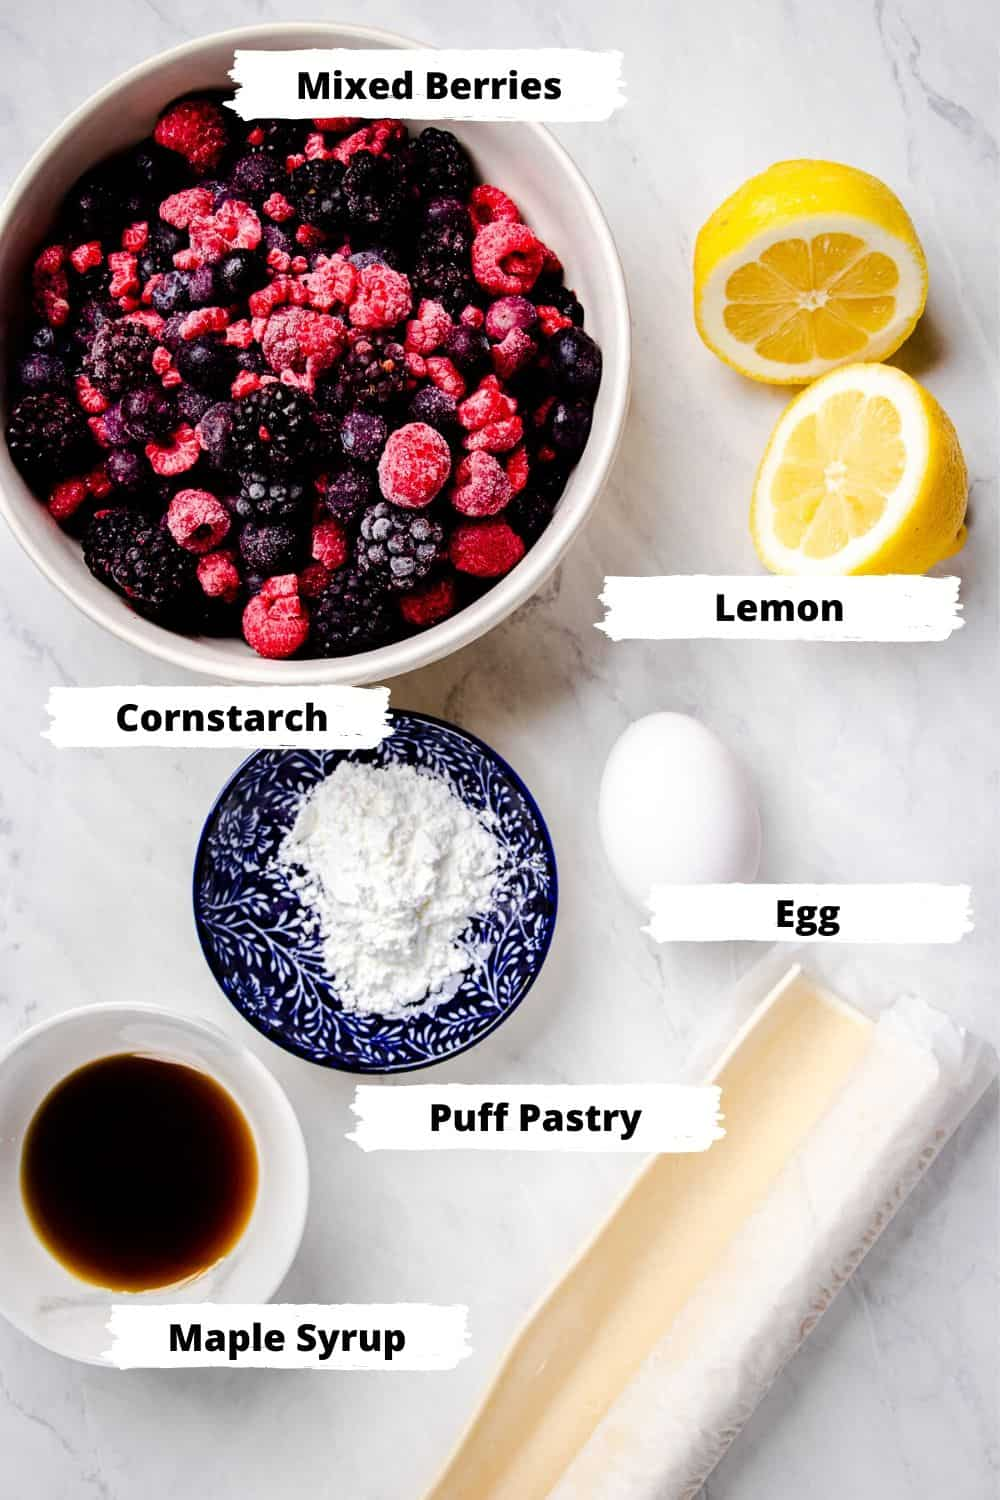 Ingredients for puff pastry tarts with mexed berries.